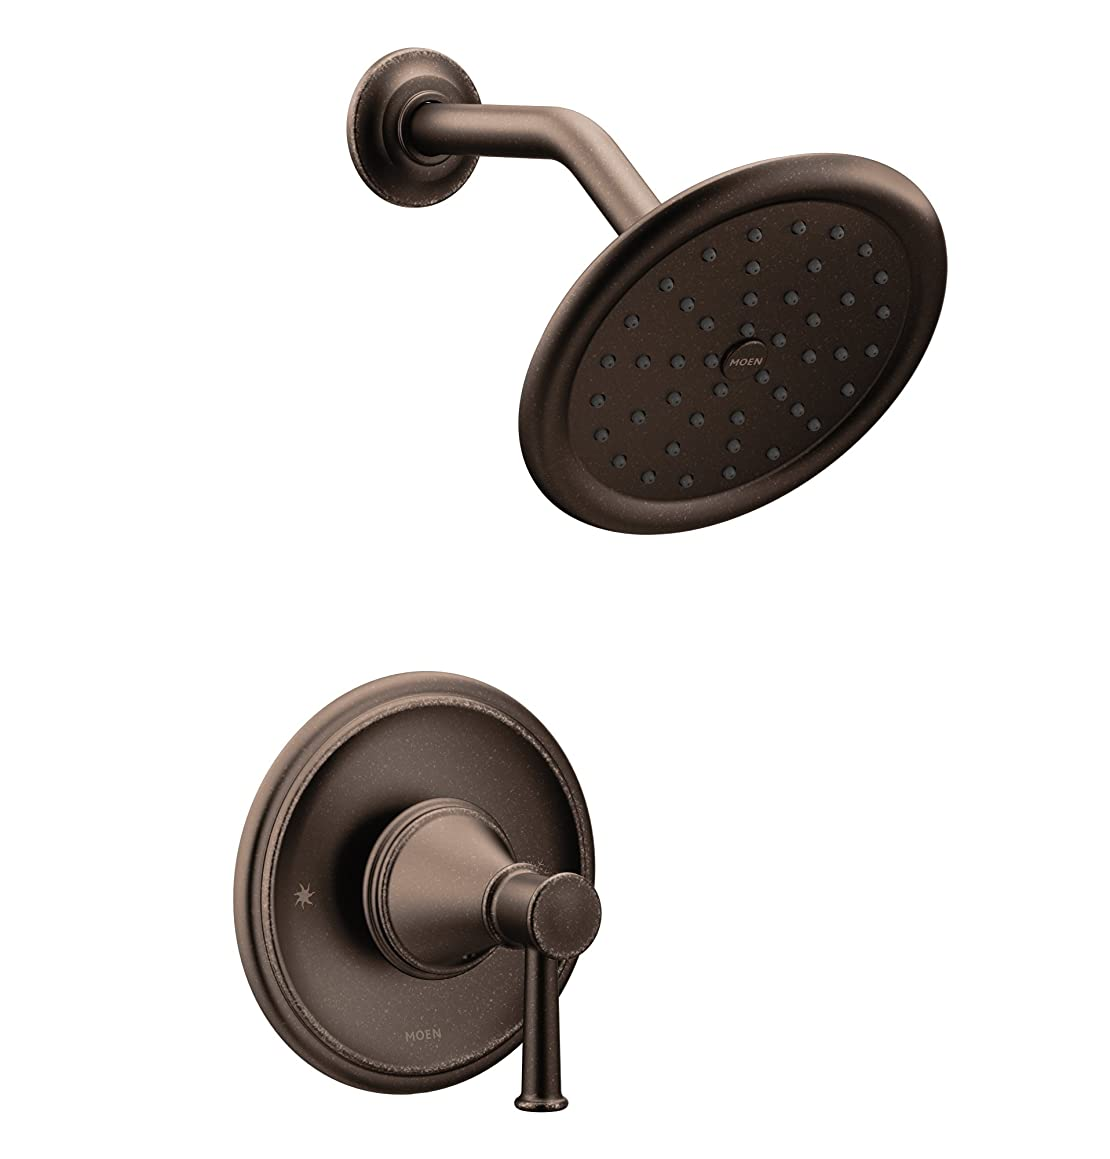 Moen T2312ORB Belfield Posi-Temp Shower Trim Kit Without Valve, Oil Rubbed Bronze